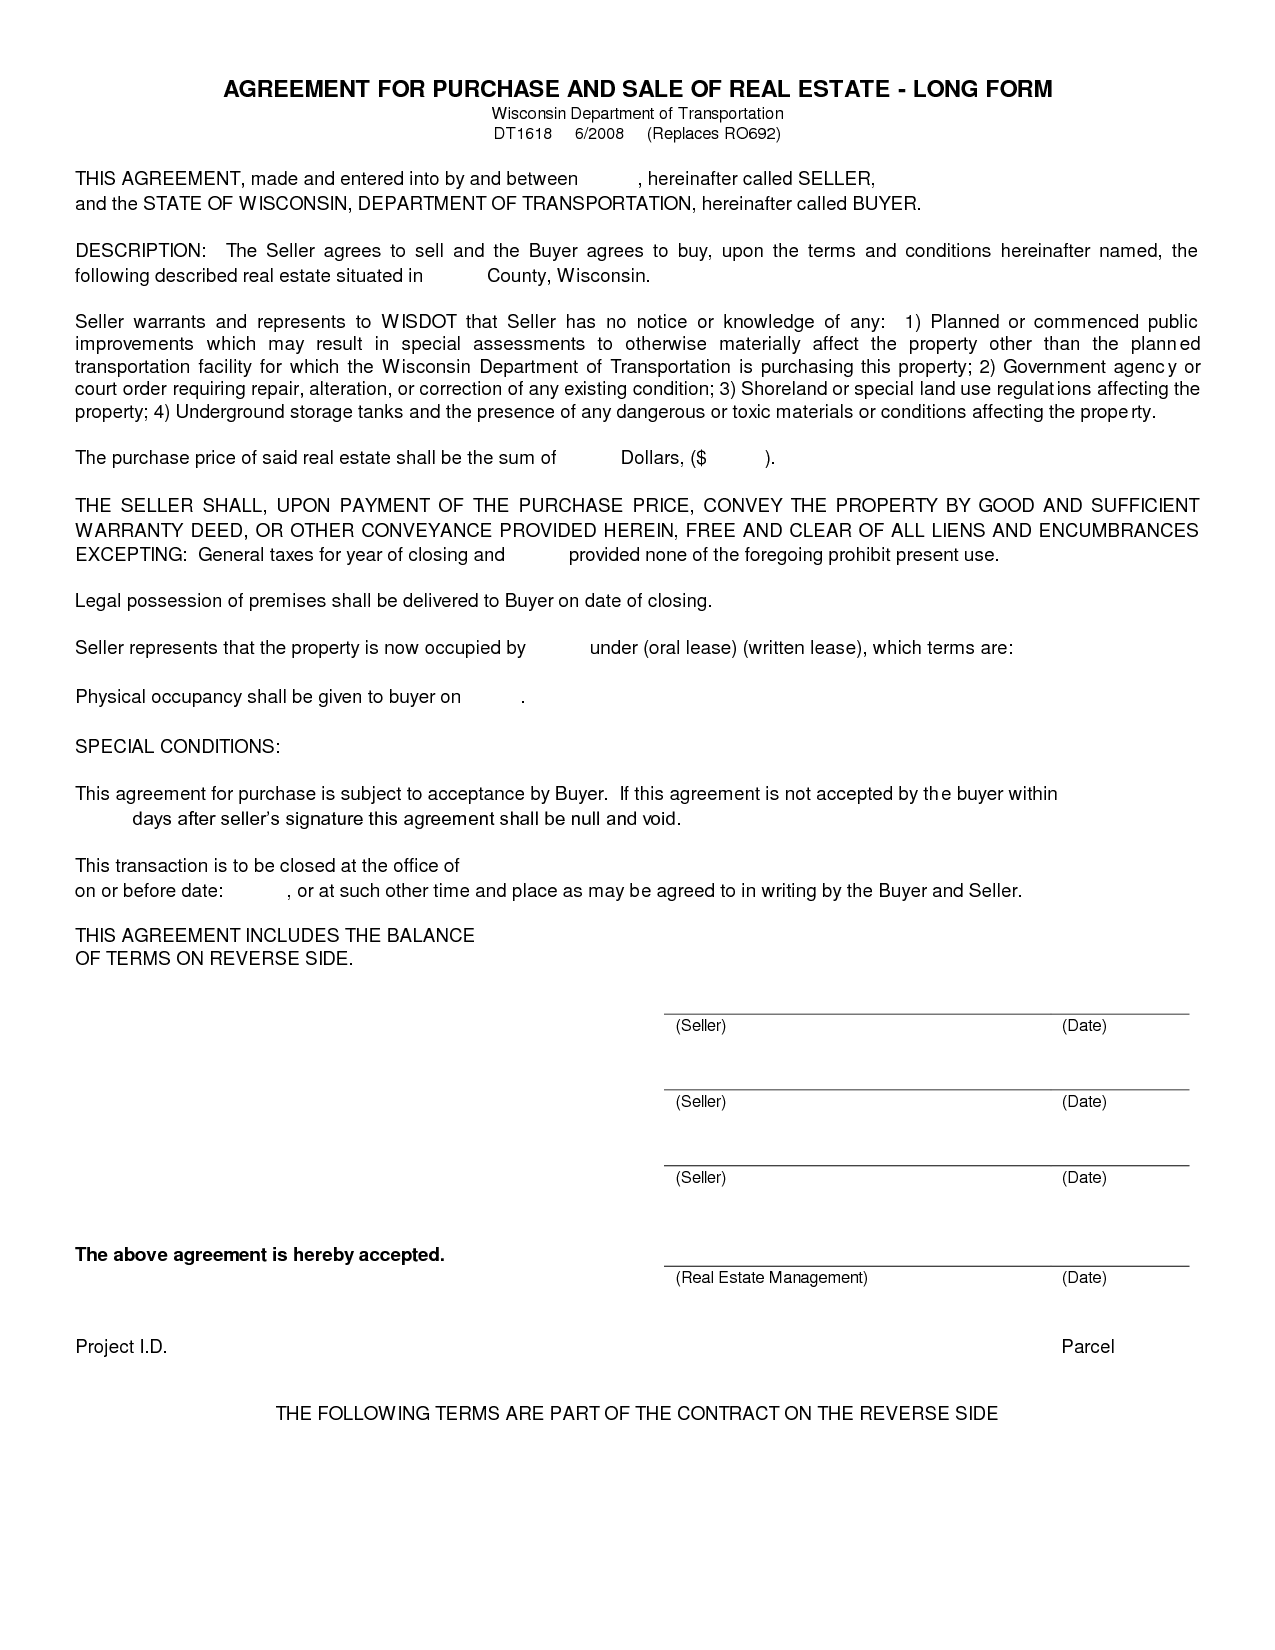 Free Blank Purchase Agreement Form Images  Agreement To Purchase